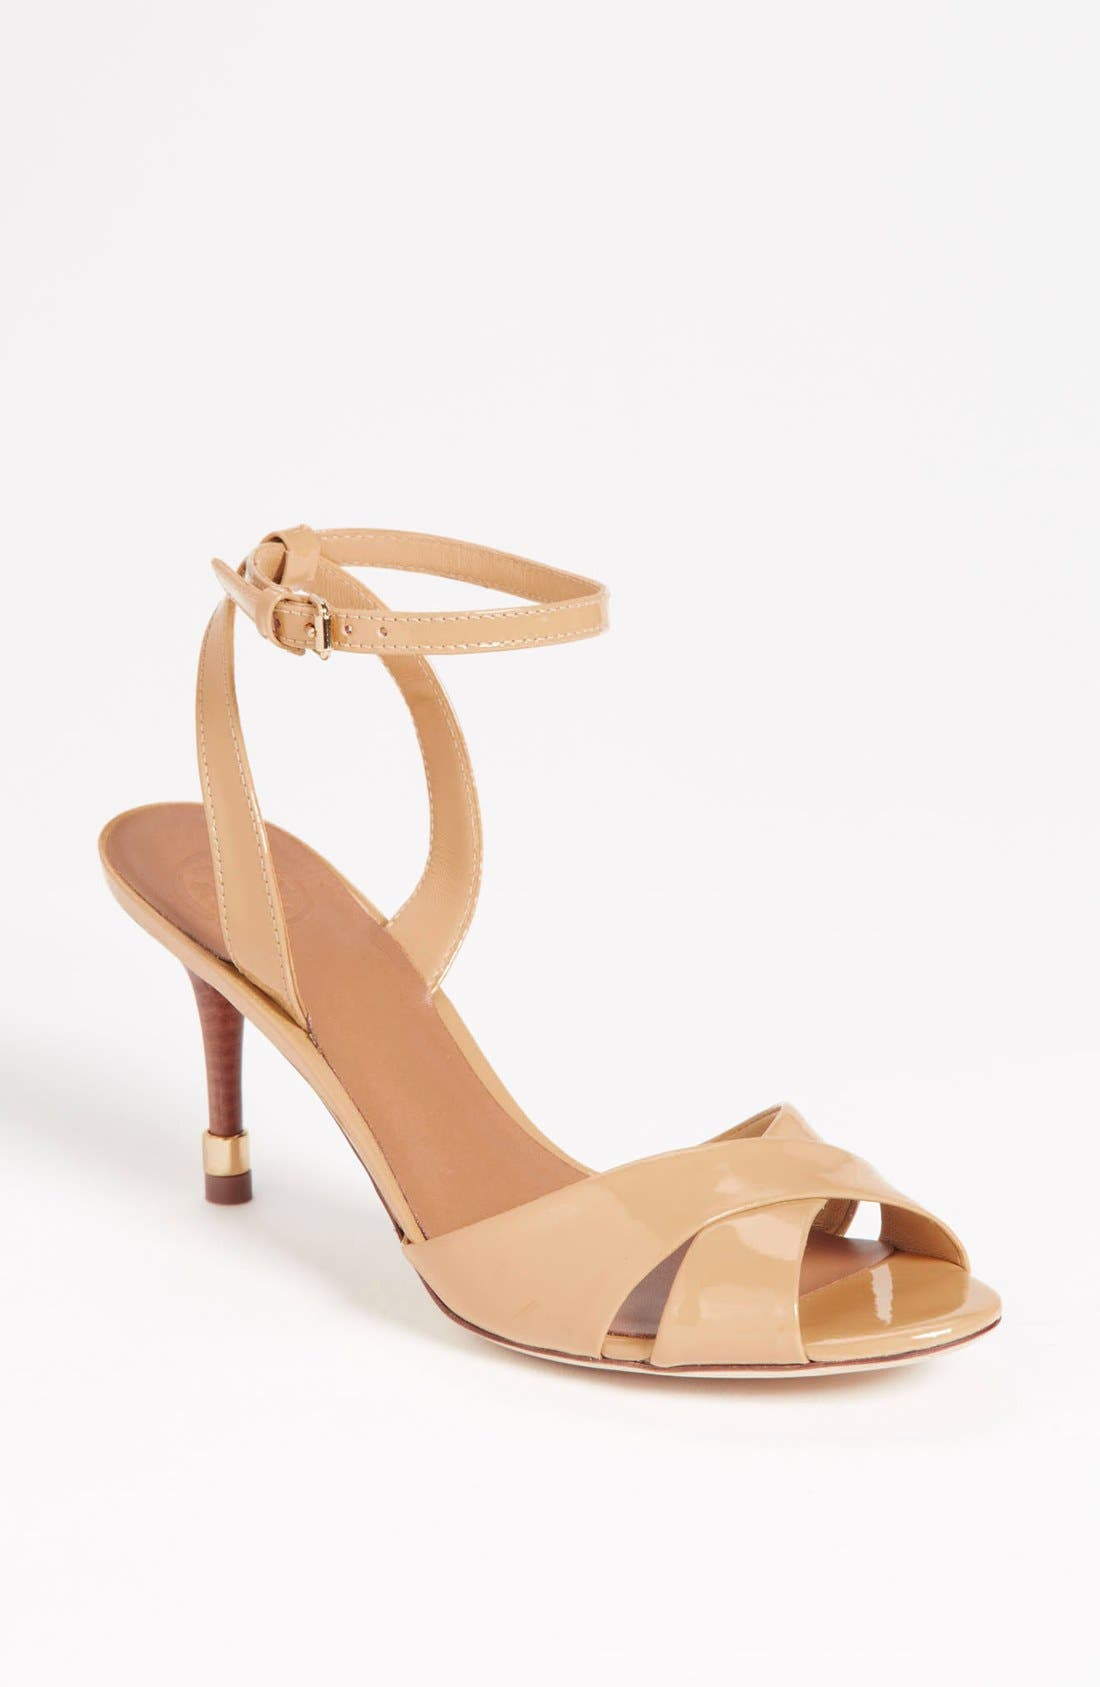 Alternate Image 1 Selected - Tory Burch 'Tania' Sandal